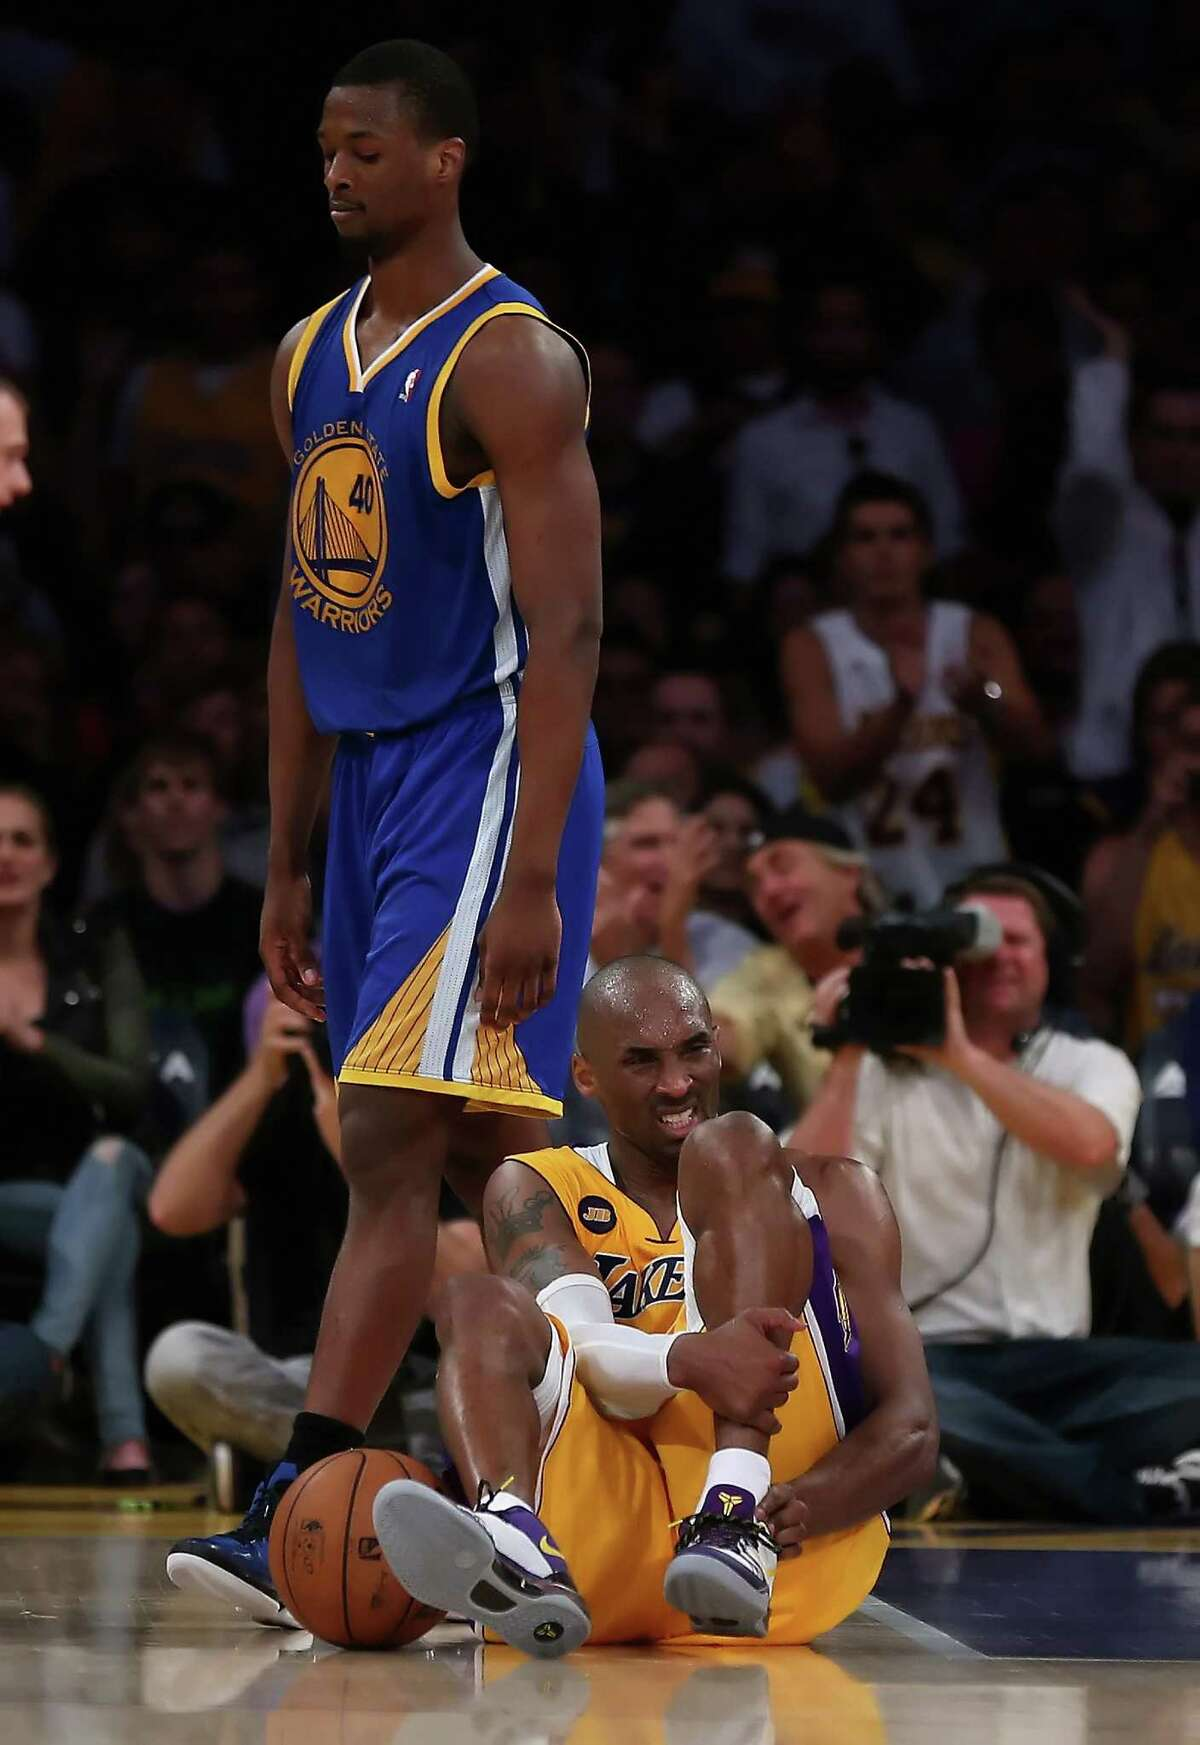 Kobe Bryant's season ended after he suffered a torn Achilles tendon in Friday's game against Golden State.